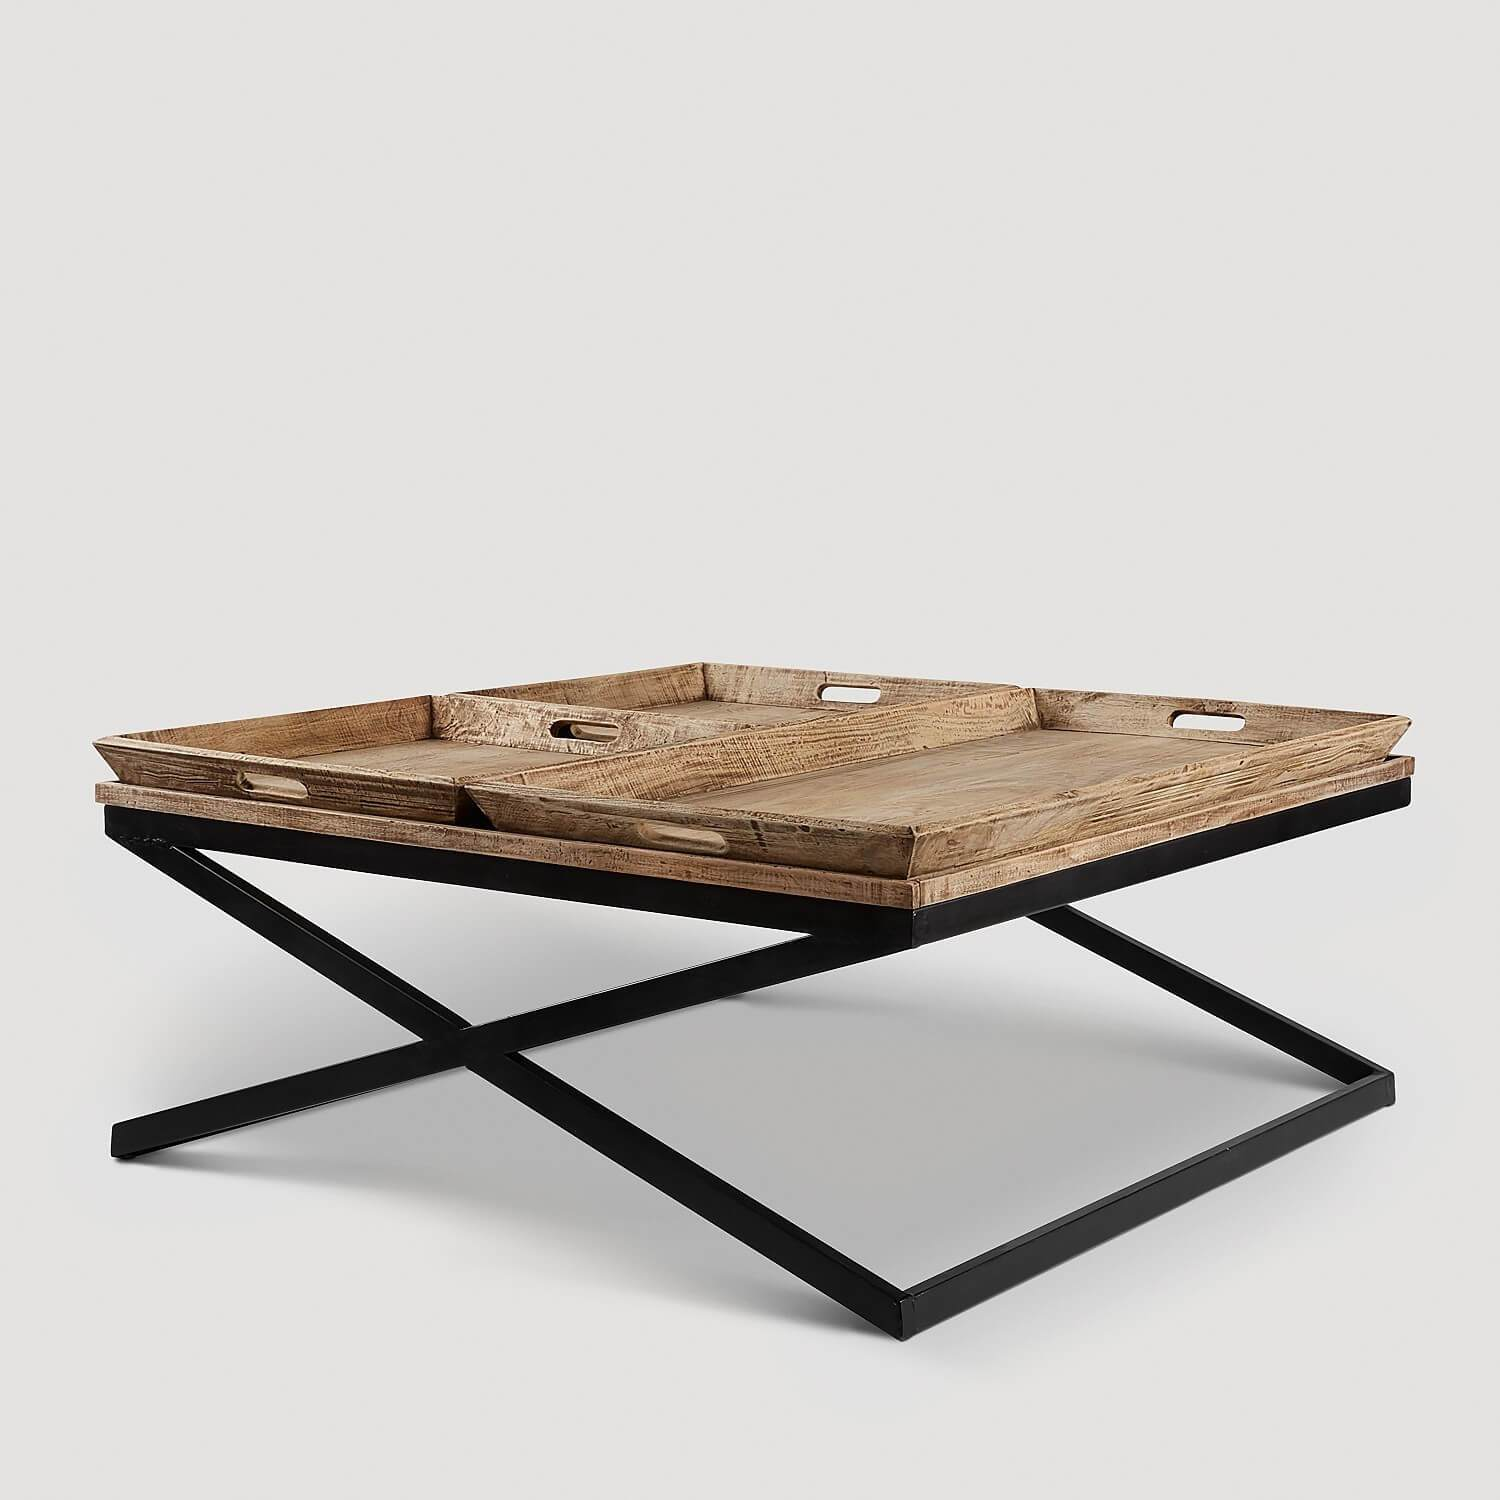 swazi coffee table with tray koala living end inch high console decorations made from pallets above toilet storage long count calendar log furniture bits linea brooklyn leather